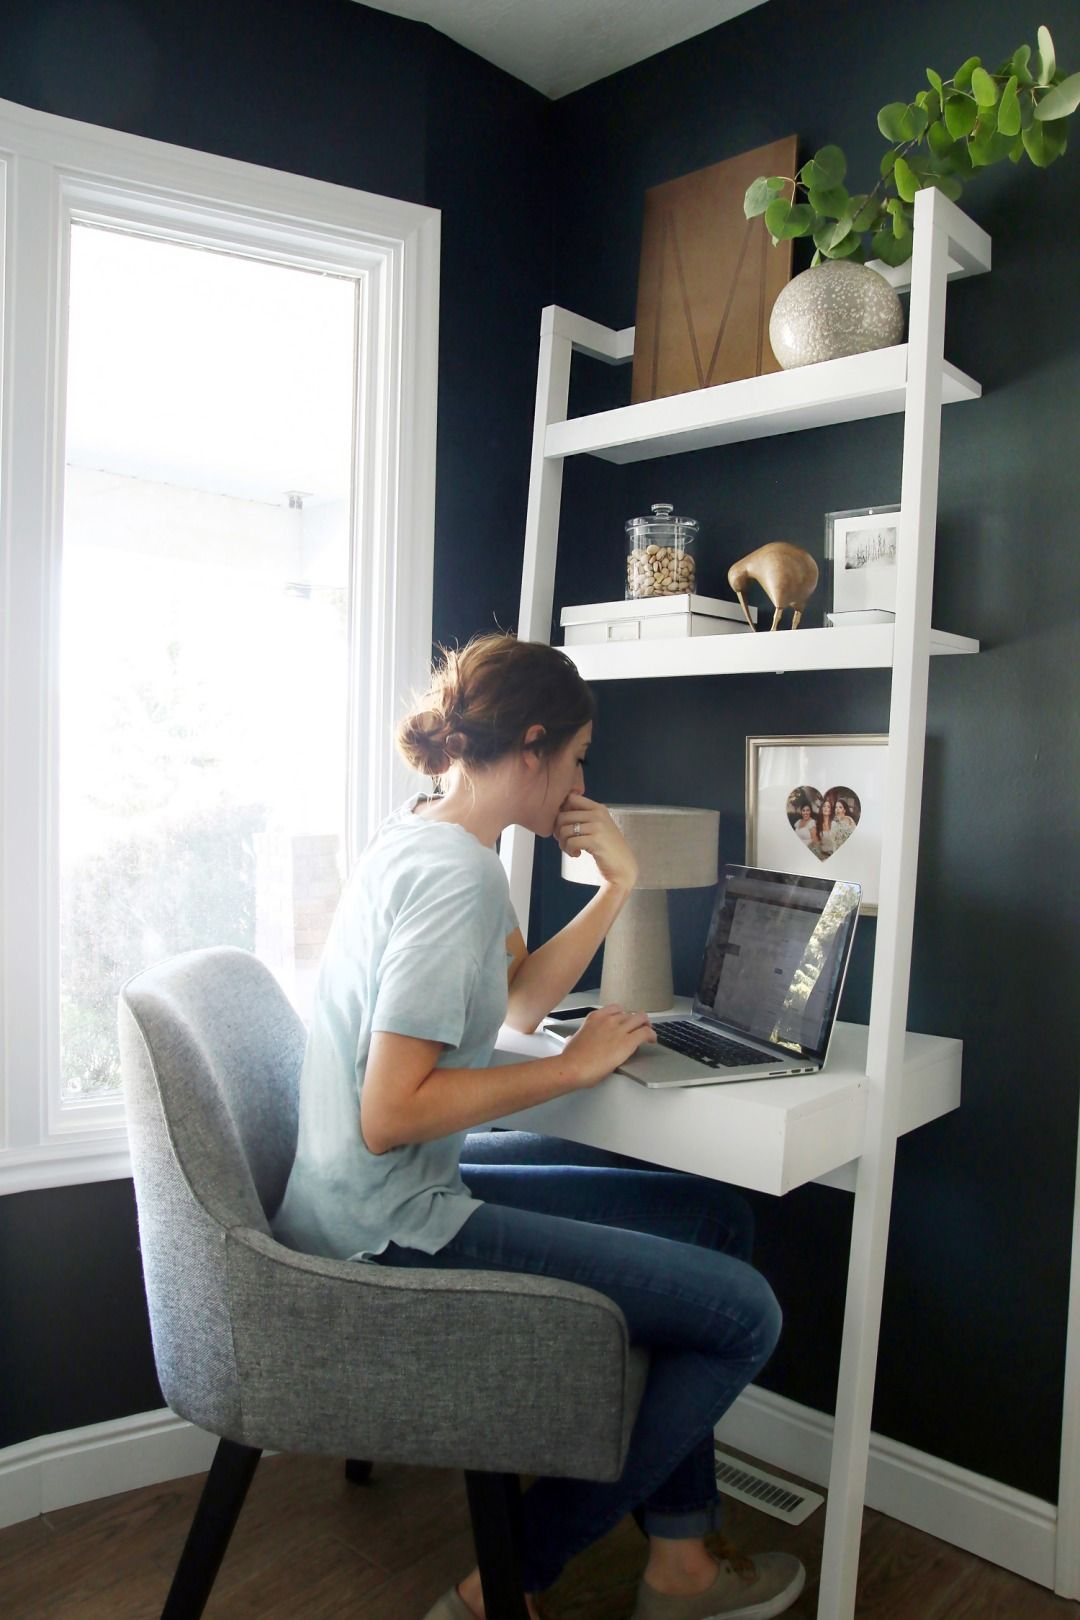 tiny home office. Beautiful Tiny Create A Stylish Productive Little Nook Even When Space Is Tight With  Our Chic Modern Home Office Ideas For Small Spaces From Chrislovesjulia With Tiny Home Office O